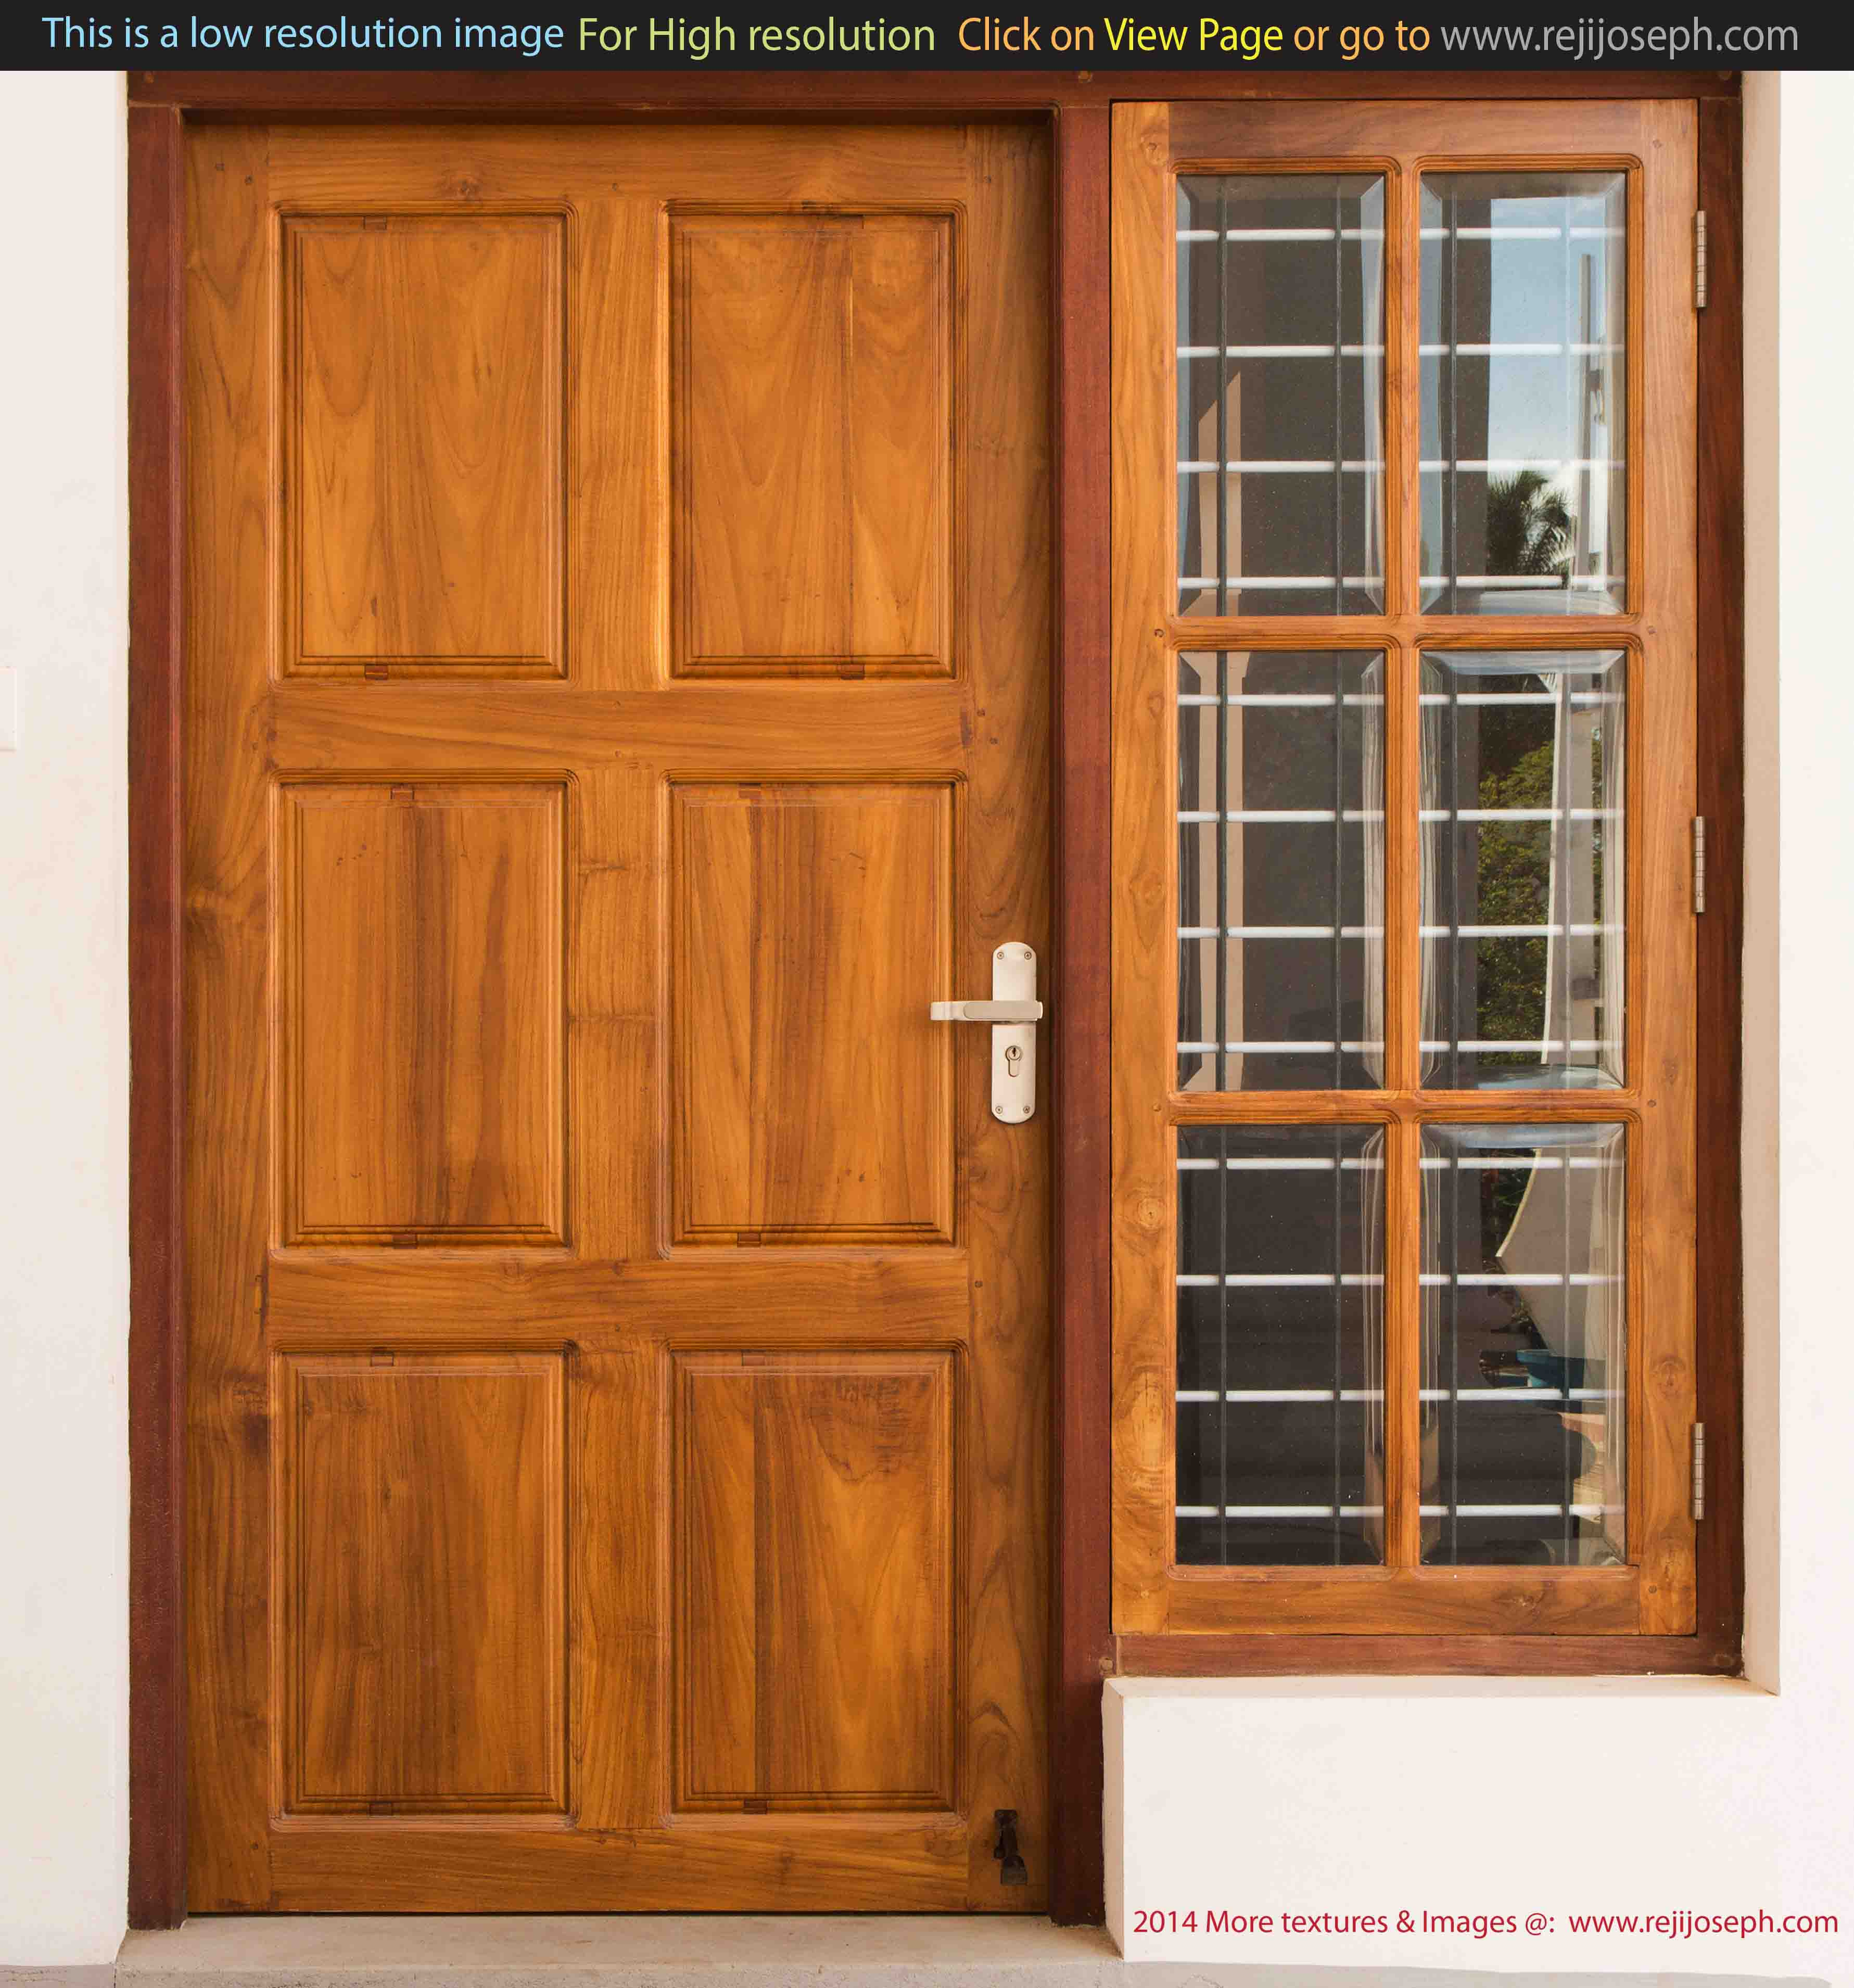 Wooden door window texture 00002